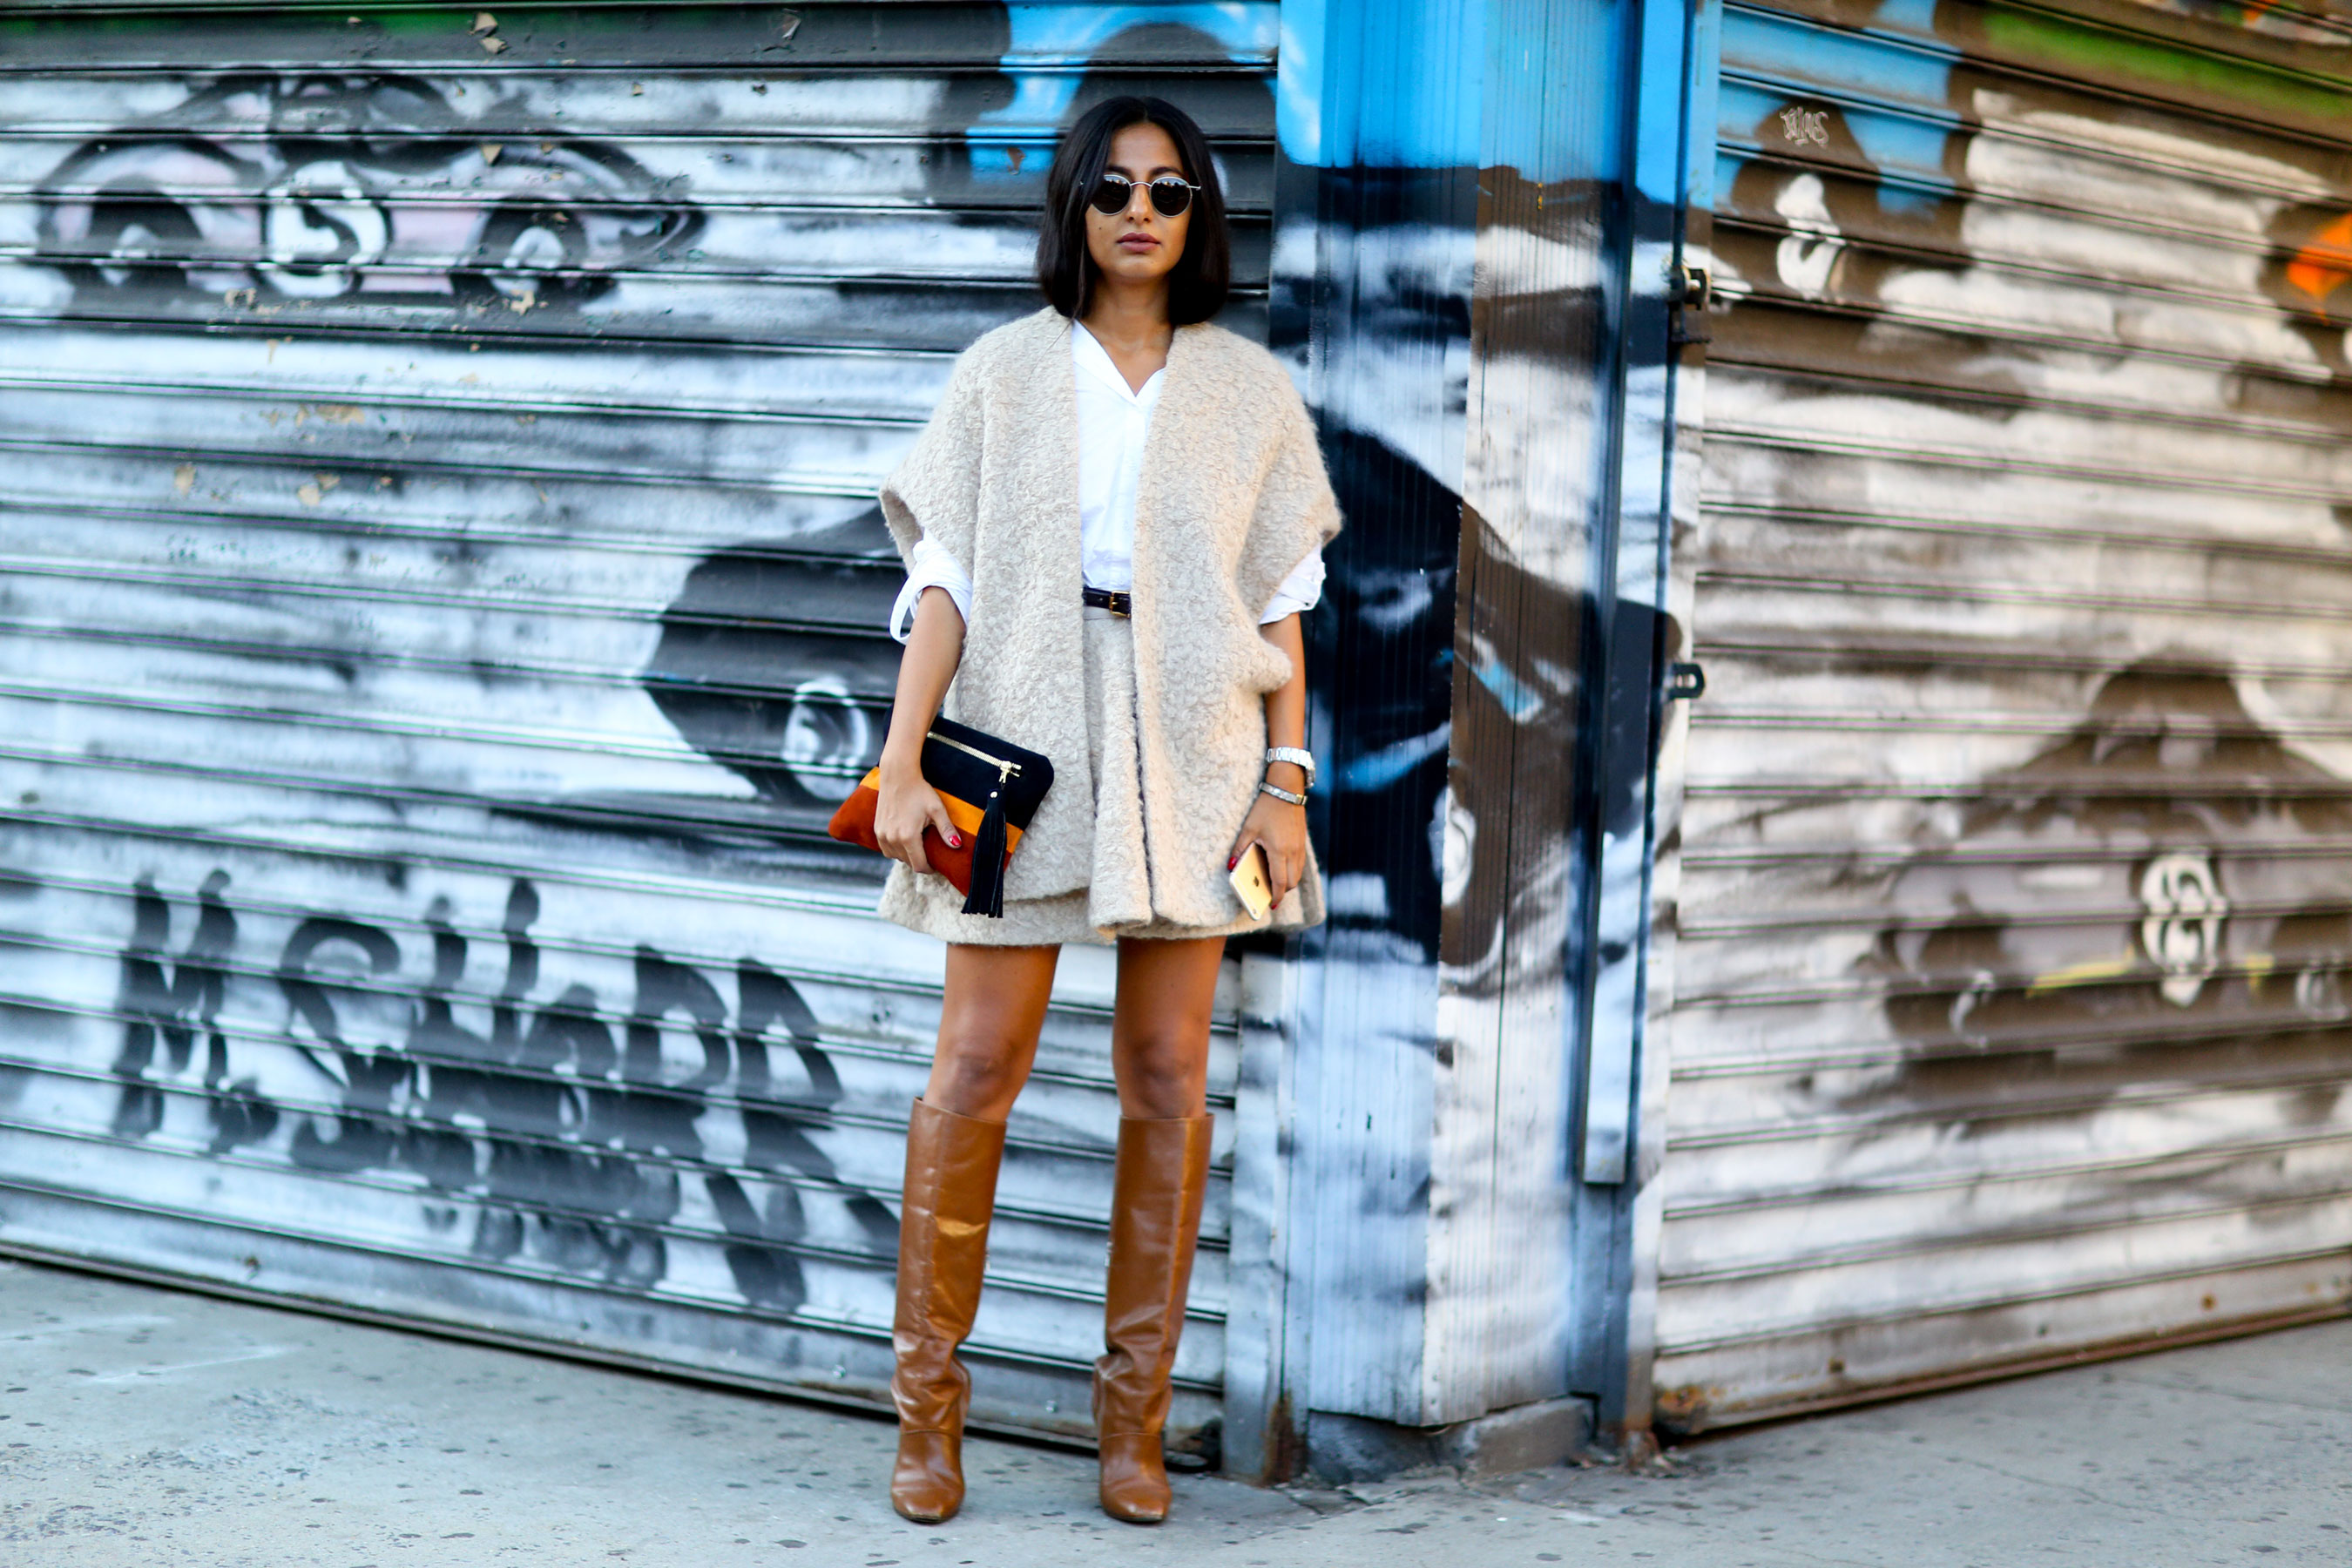 NEW-YORK-FASHION-WEEK-STREETS-STYLE-DAY5-spring-2016-fashion-show-the-impression-03 (1)